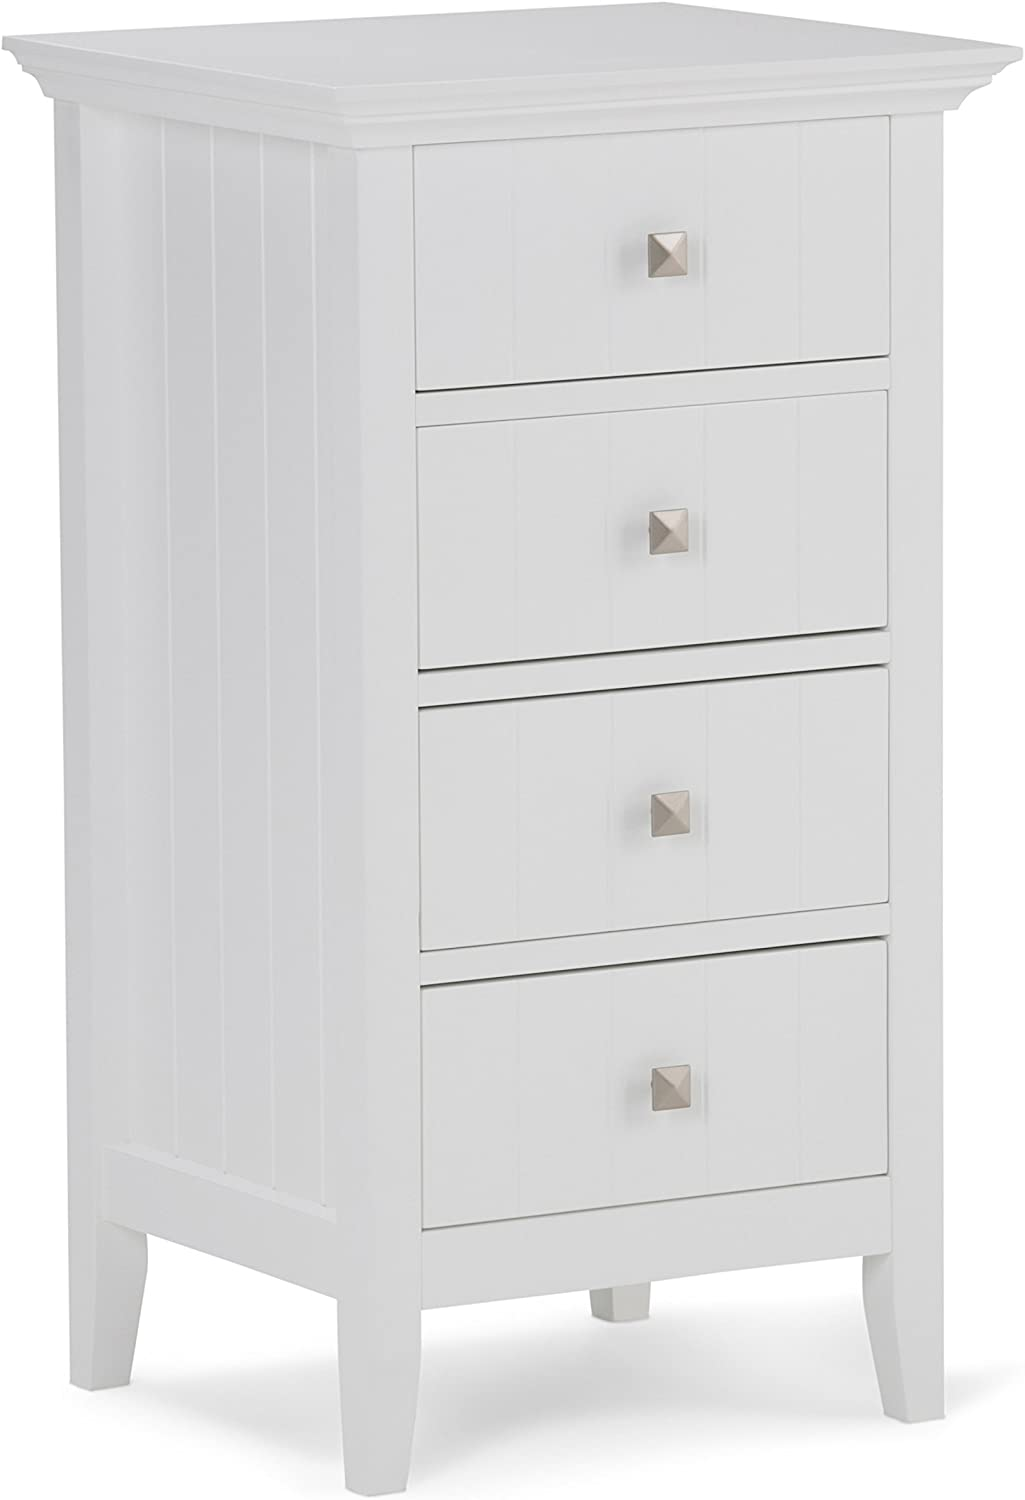 Simpli Home AXCBCACA-02 Acadian 32.1 inch H x 18 inch W Four Drawer Floor Storage Bath Cabinet in White